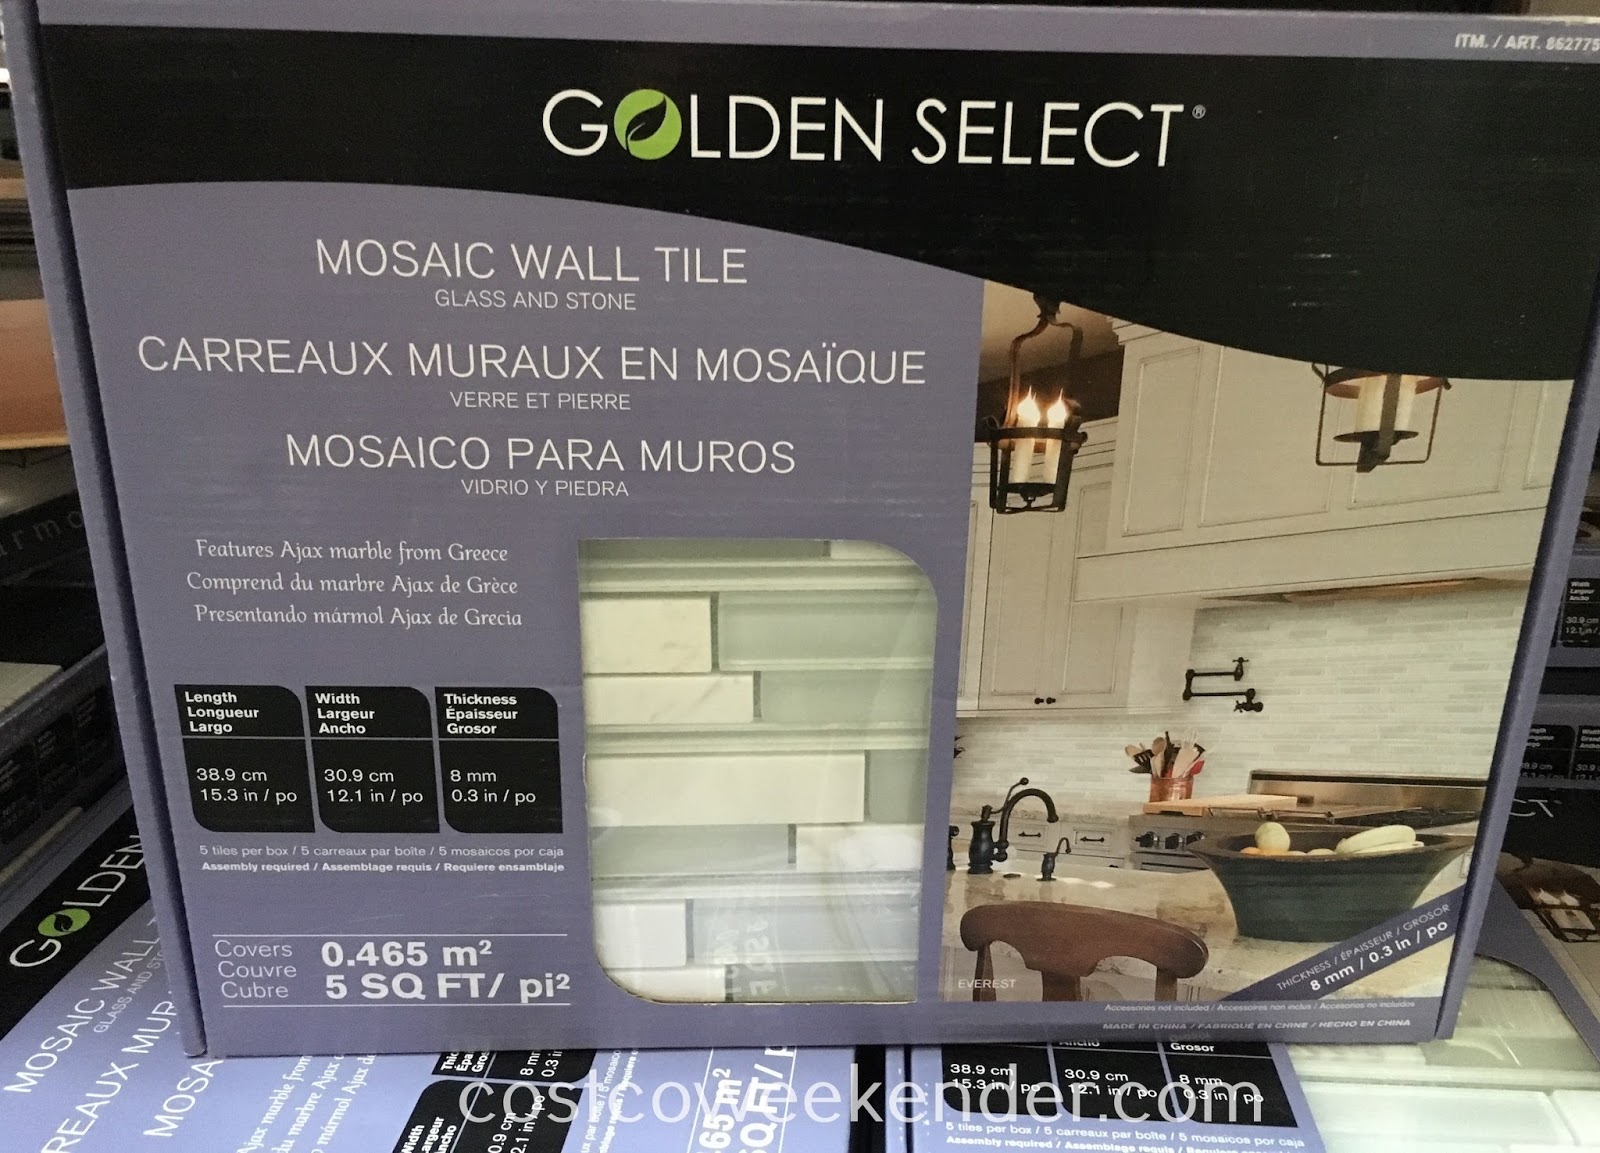 Golden Select Glass and Stone Mosaic Wall Tile - Gives your wall that clean and professional backsplash